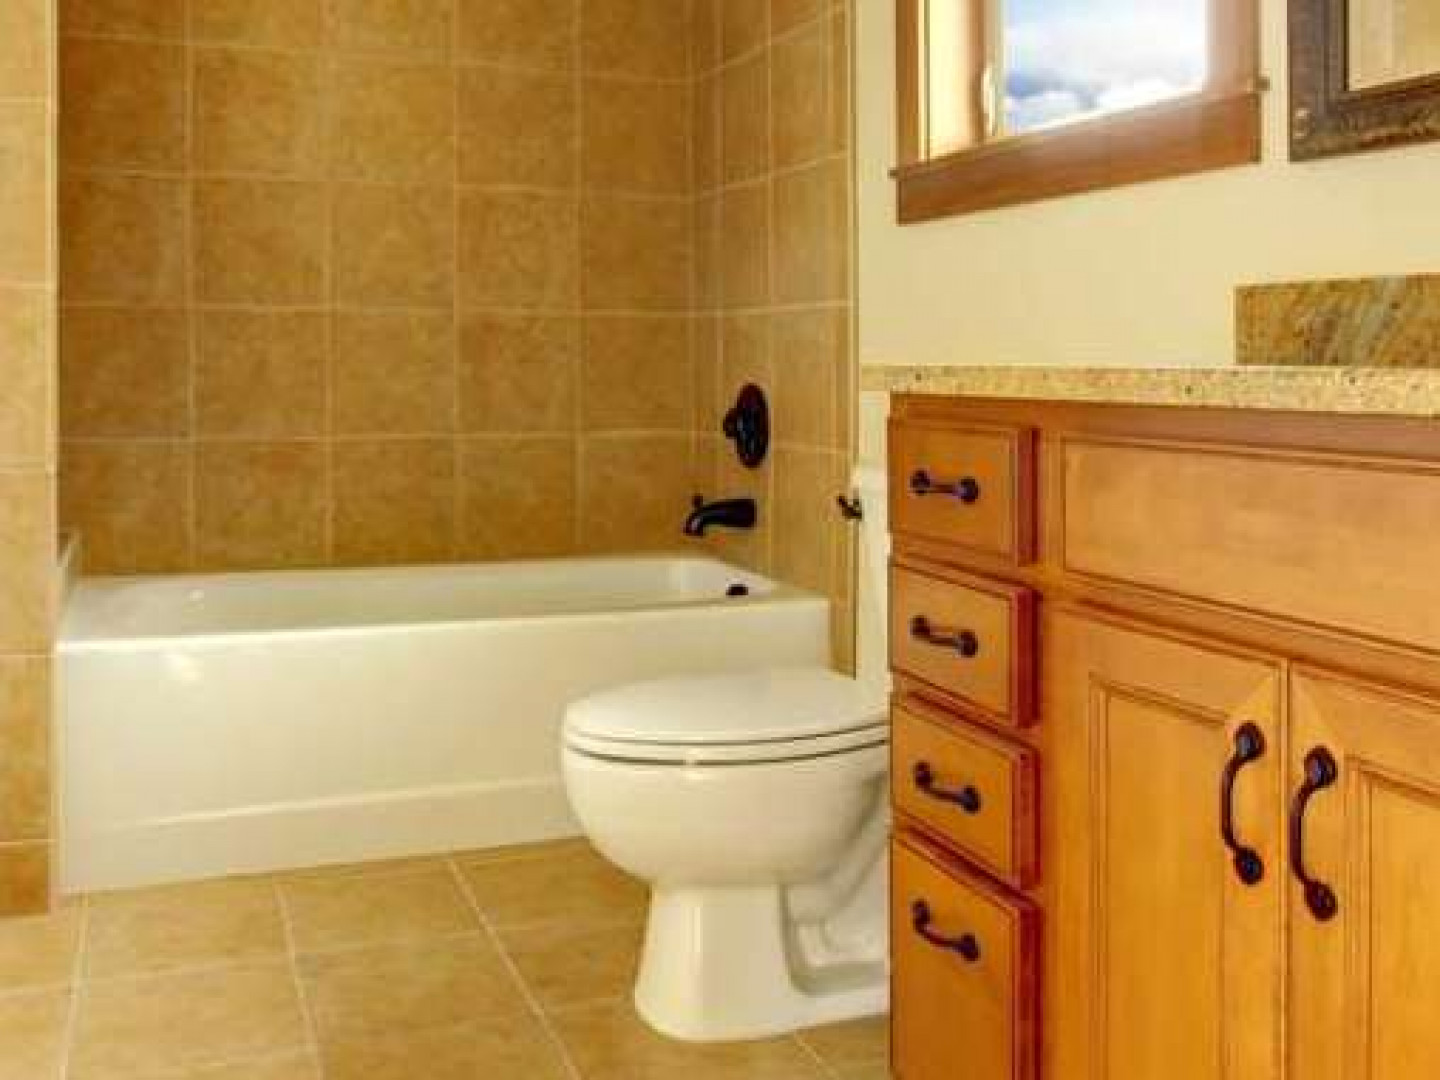 Find Toilet Installation Services in Las Cruces, NM